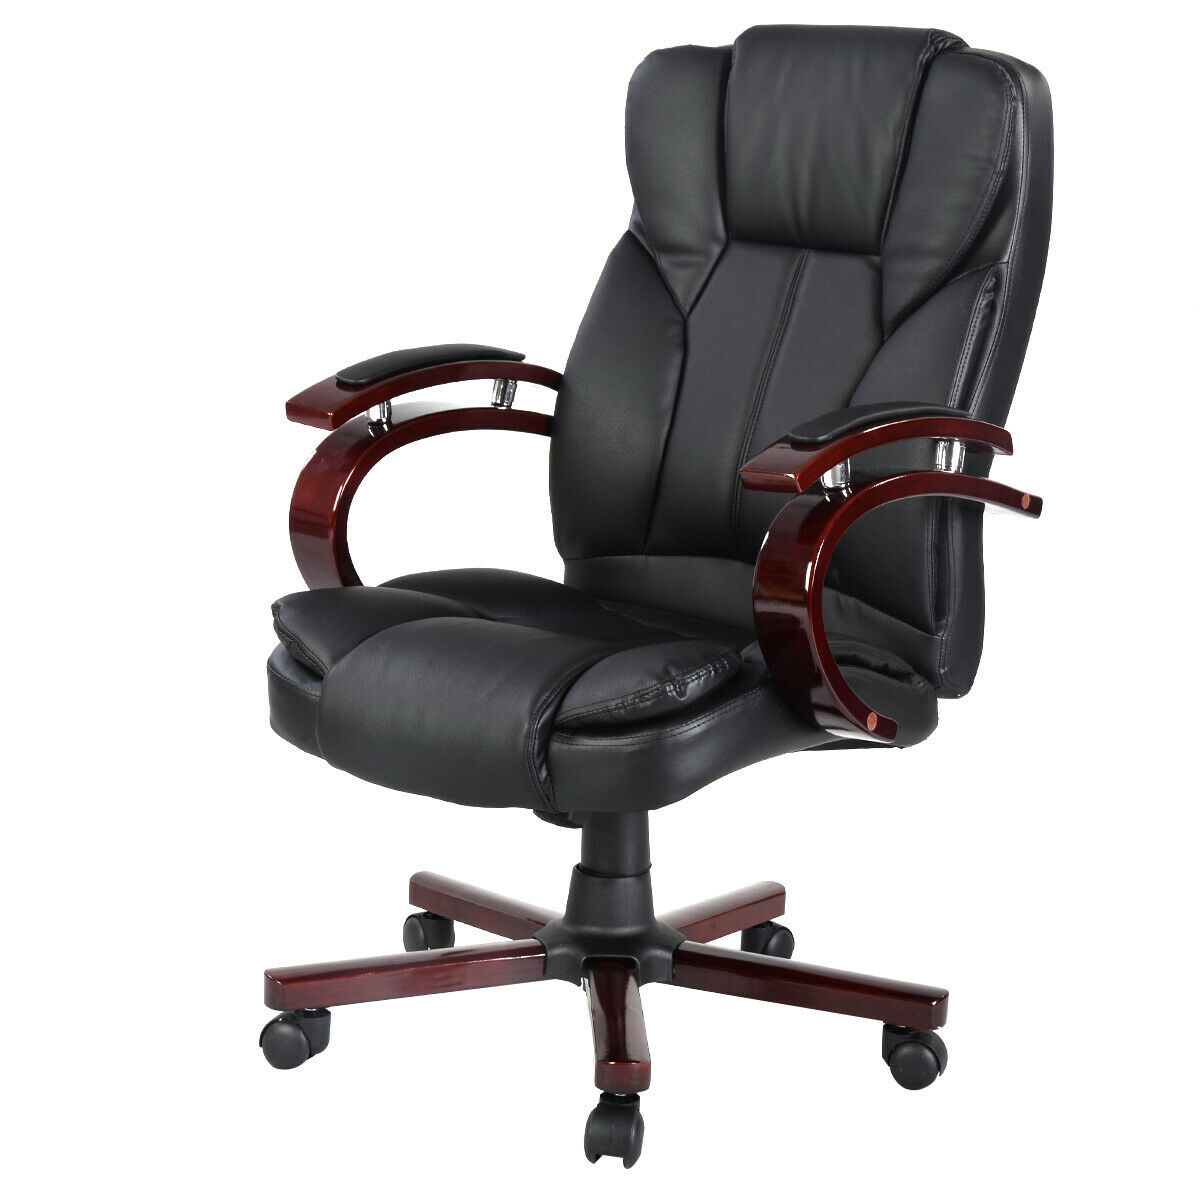 Costway Ergonomic Desk Task Office Chair High Back Executive Computer New  Style Black